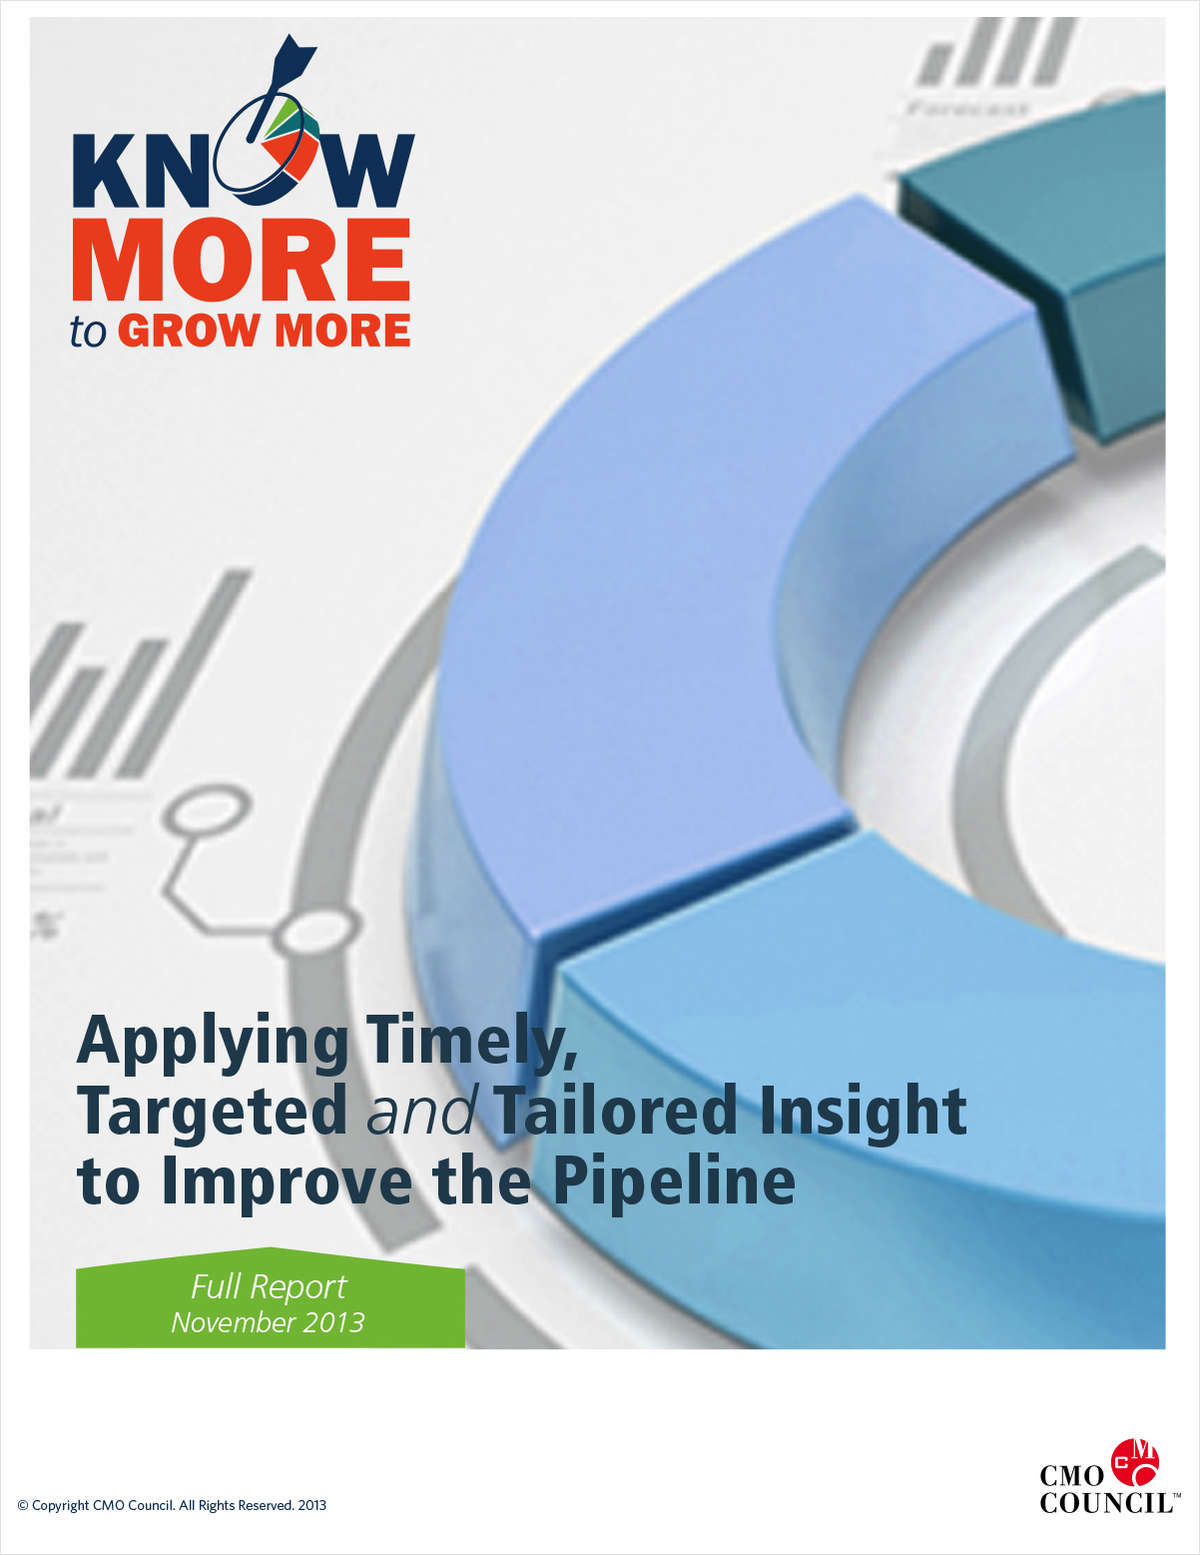 Applying Timely, Targeted and Tailored Insight to Improve Pipeline Performance